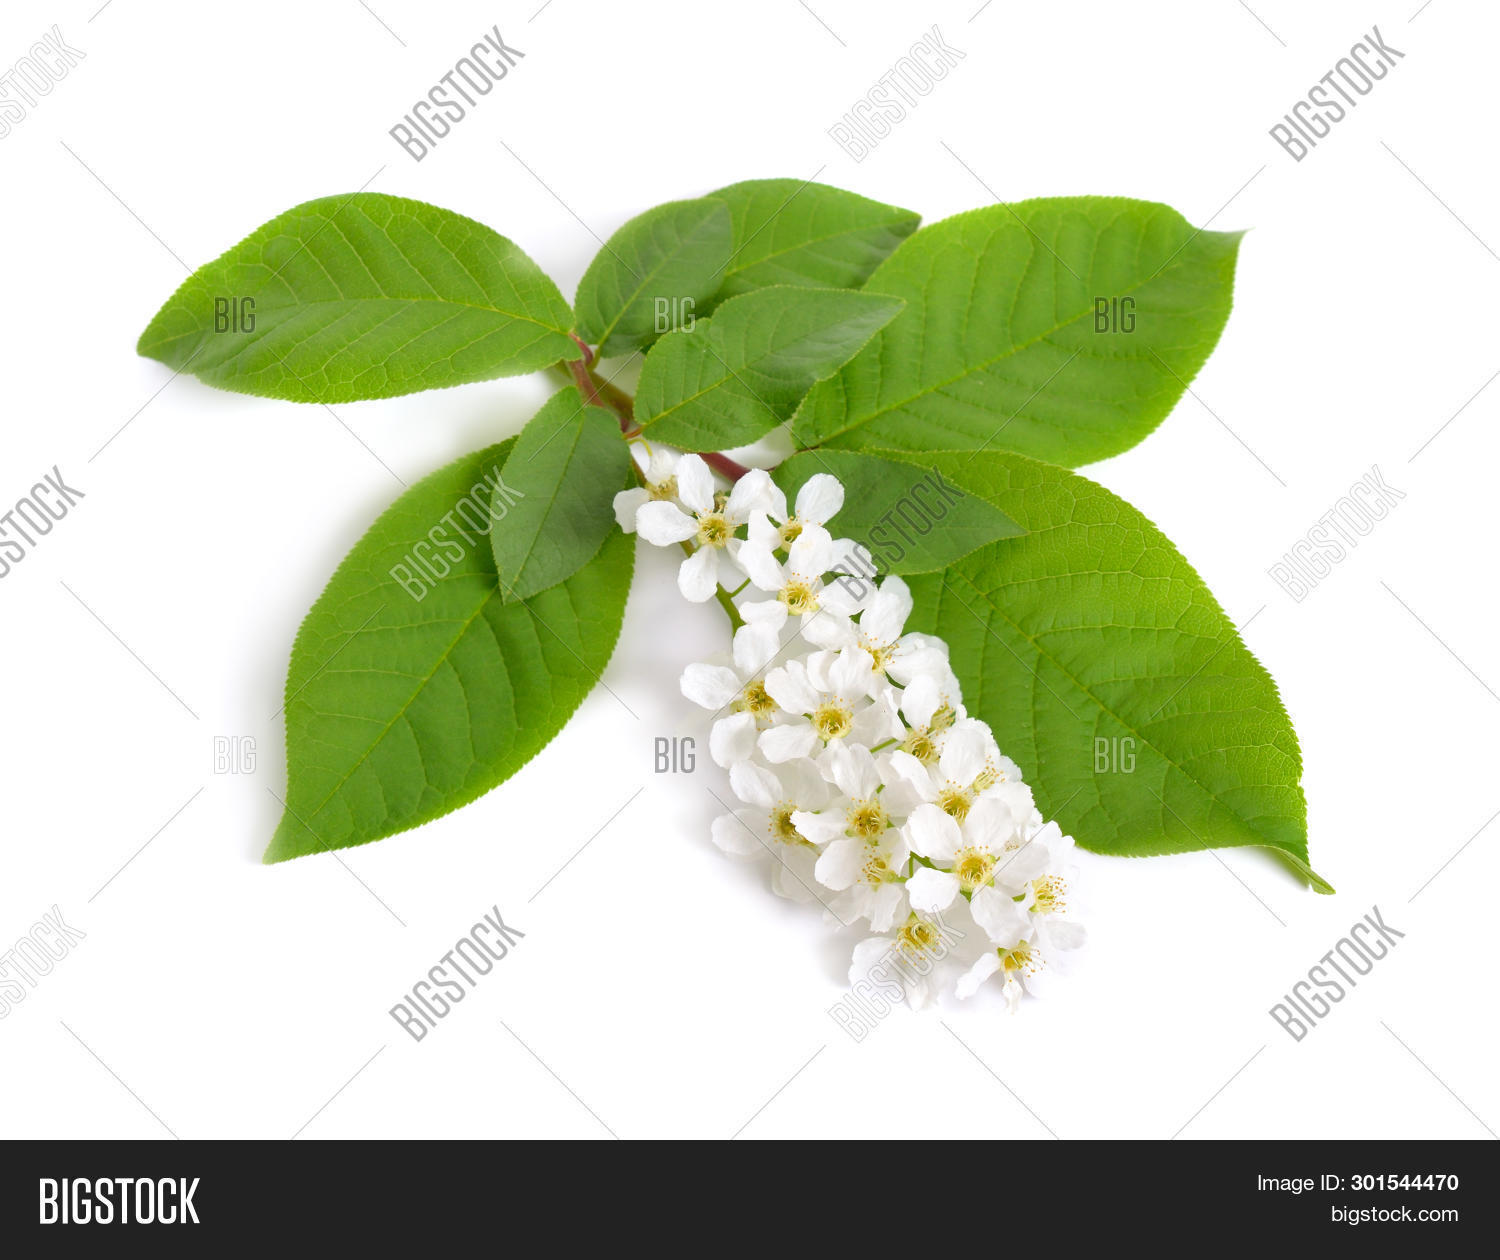 Prunus Padus Known Image Photo Free Trial Bigstock